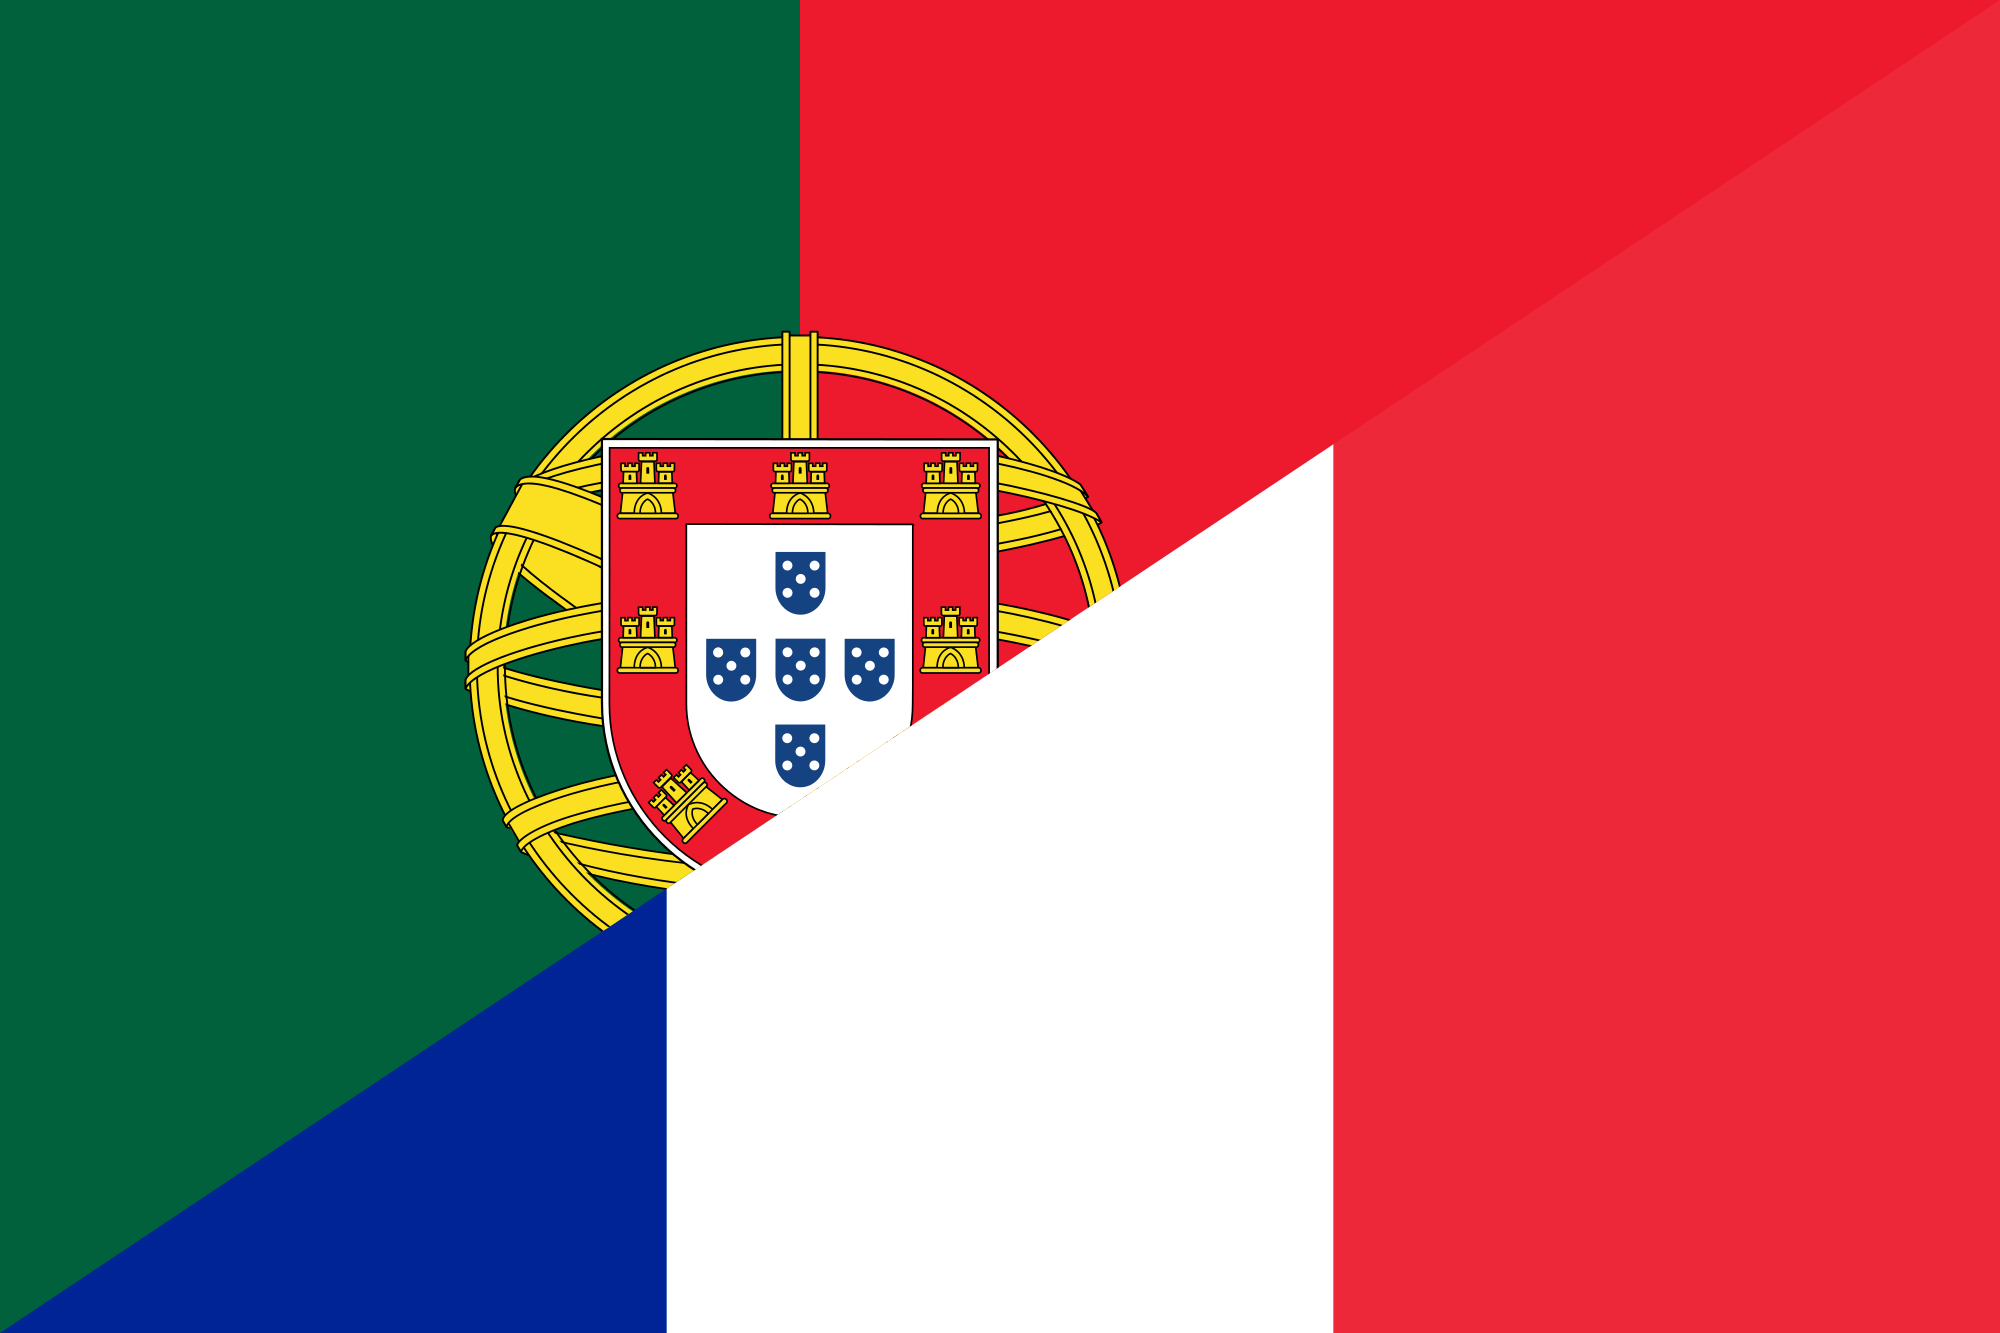 160710_WikiPedia_OpenSource_Flag_of_Portugal_and_France_FootBall_